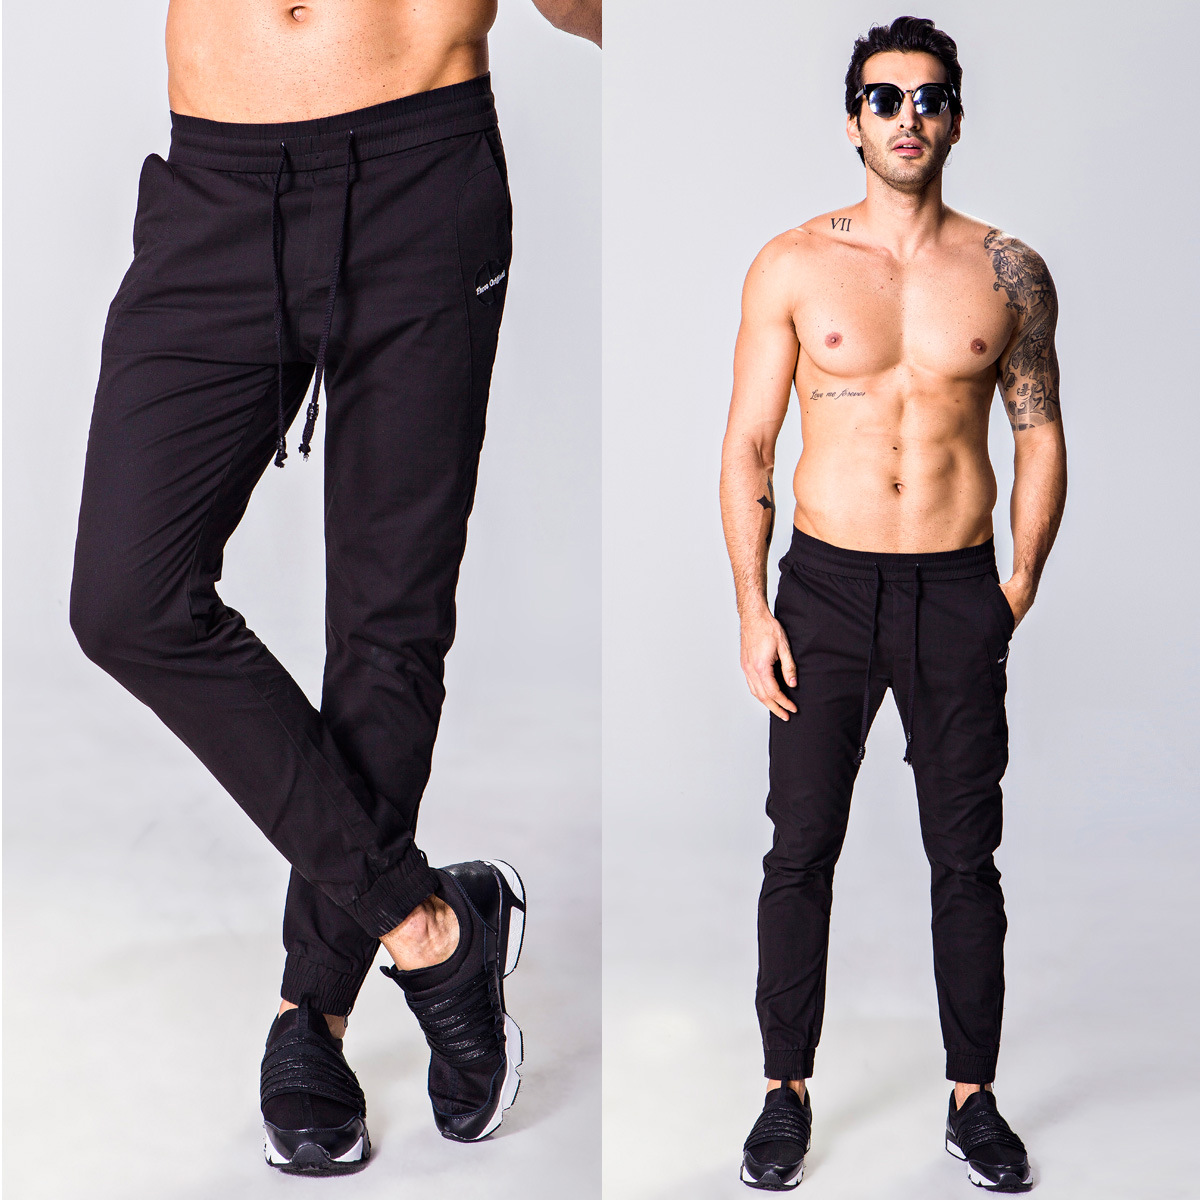 Western Style Men's Long Pants Fashion Zipper Trousers Closing Micro Elastic Men Skinny Jeans-